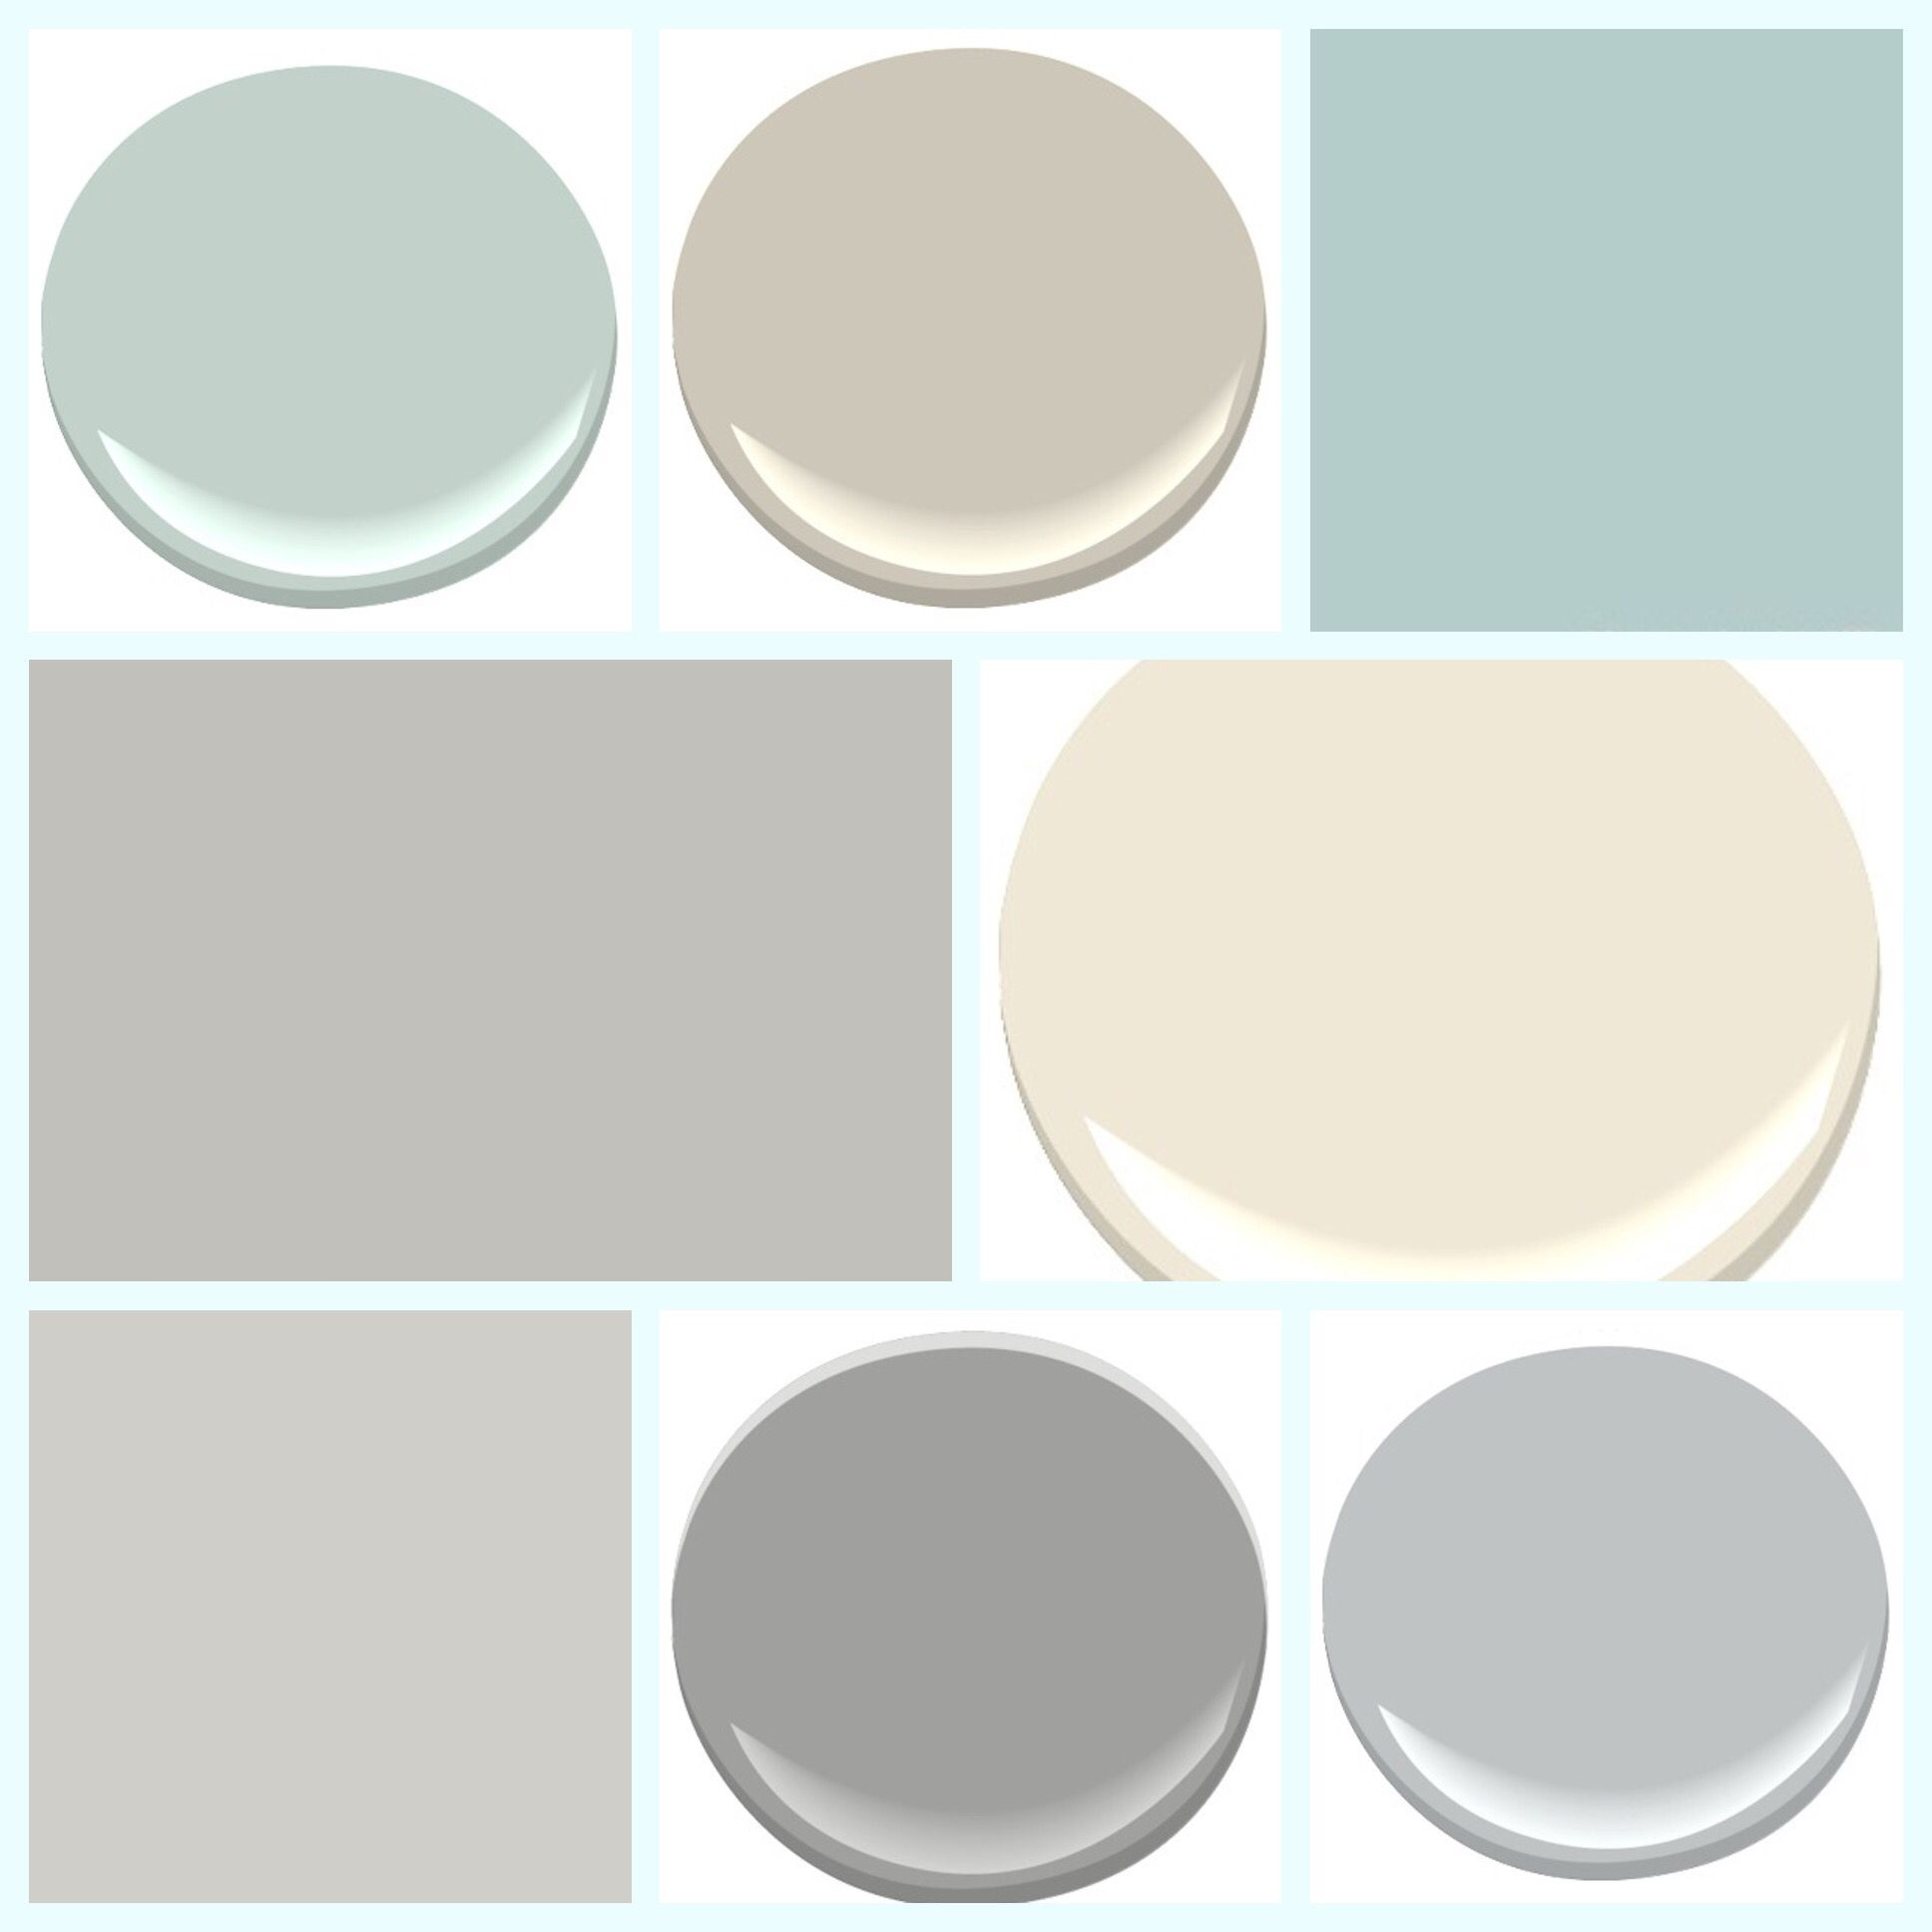 Top Row Palladian Blue Benjamin Moore Hc 144 Revere Pewter 172 Watery Sherwin Williams Sw6578 Middle Light French Gray Sw0055